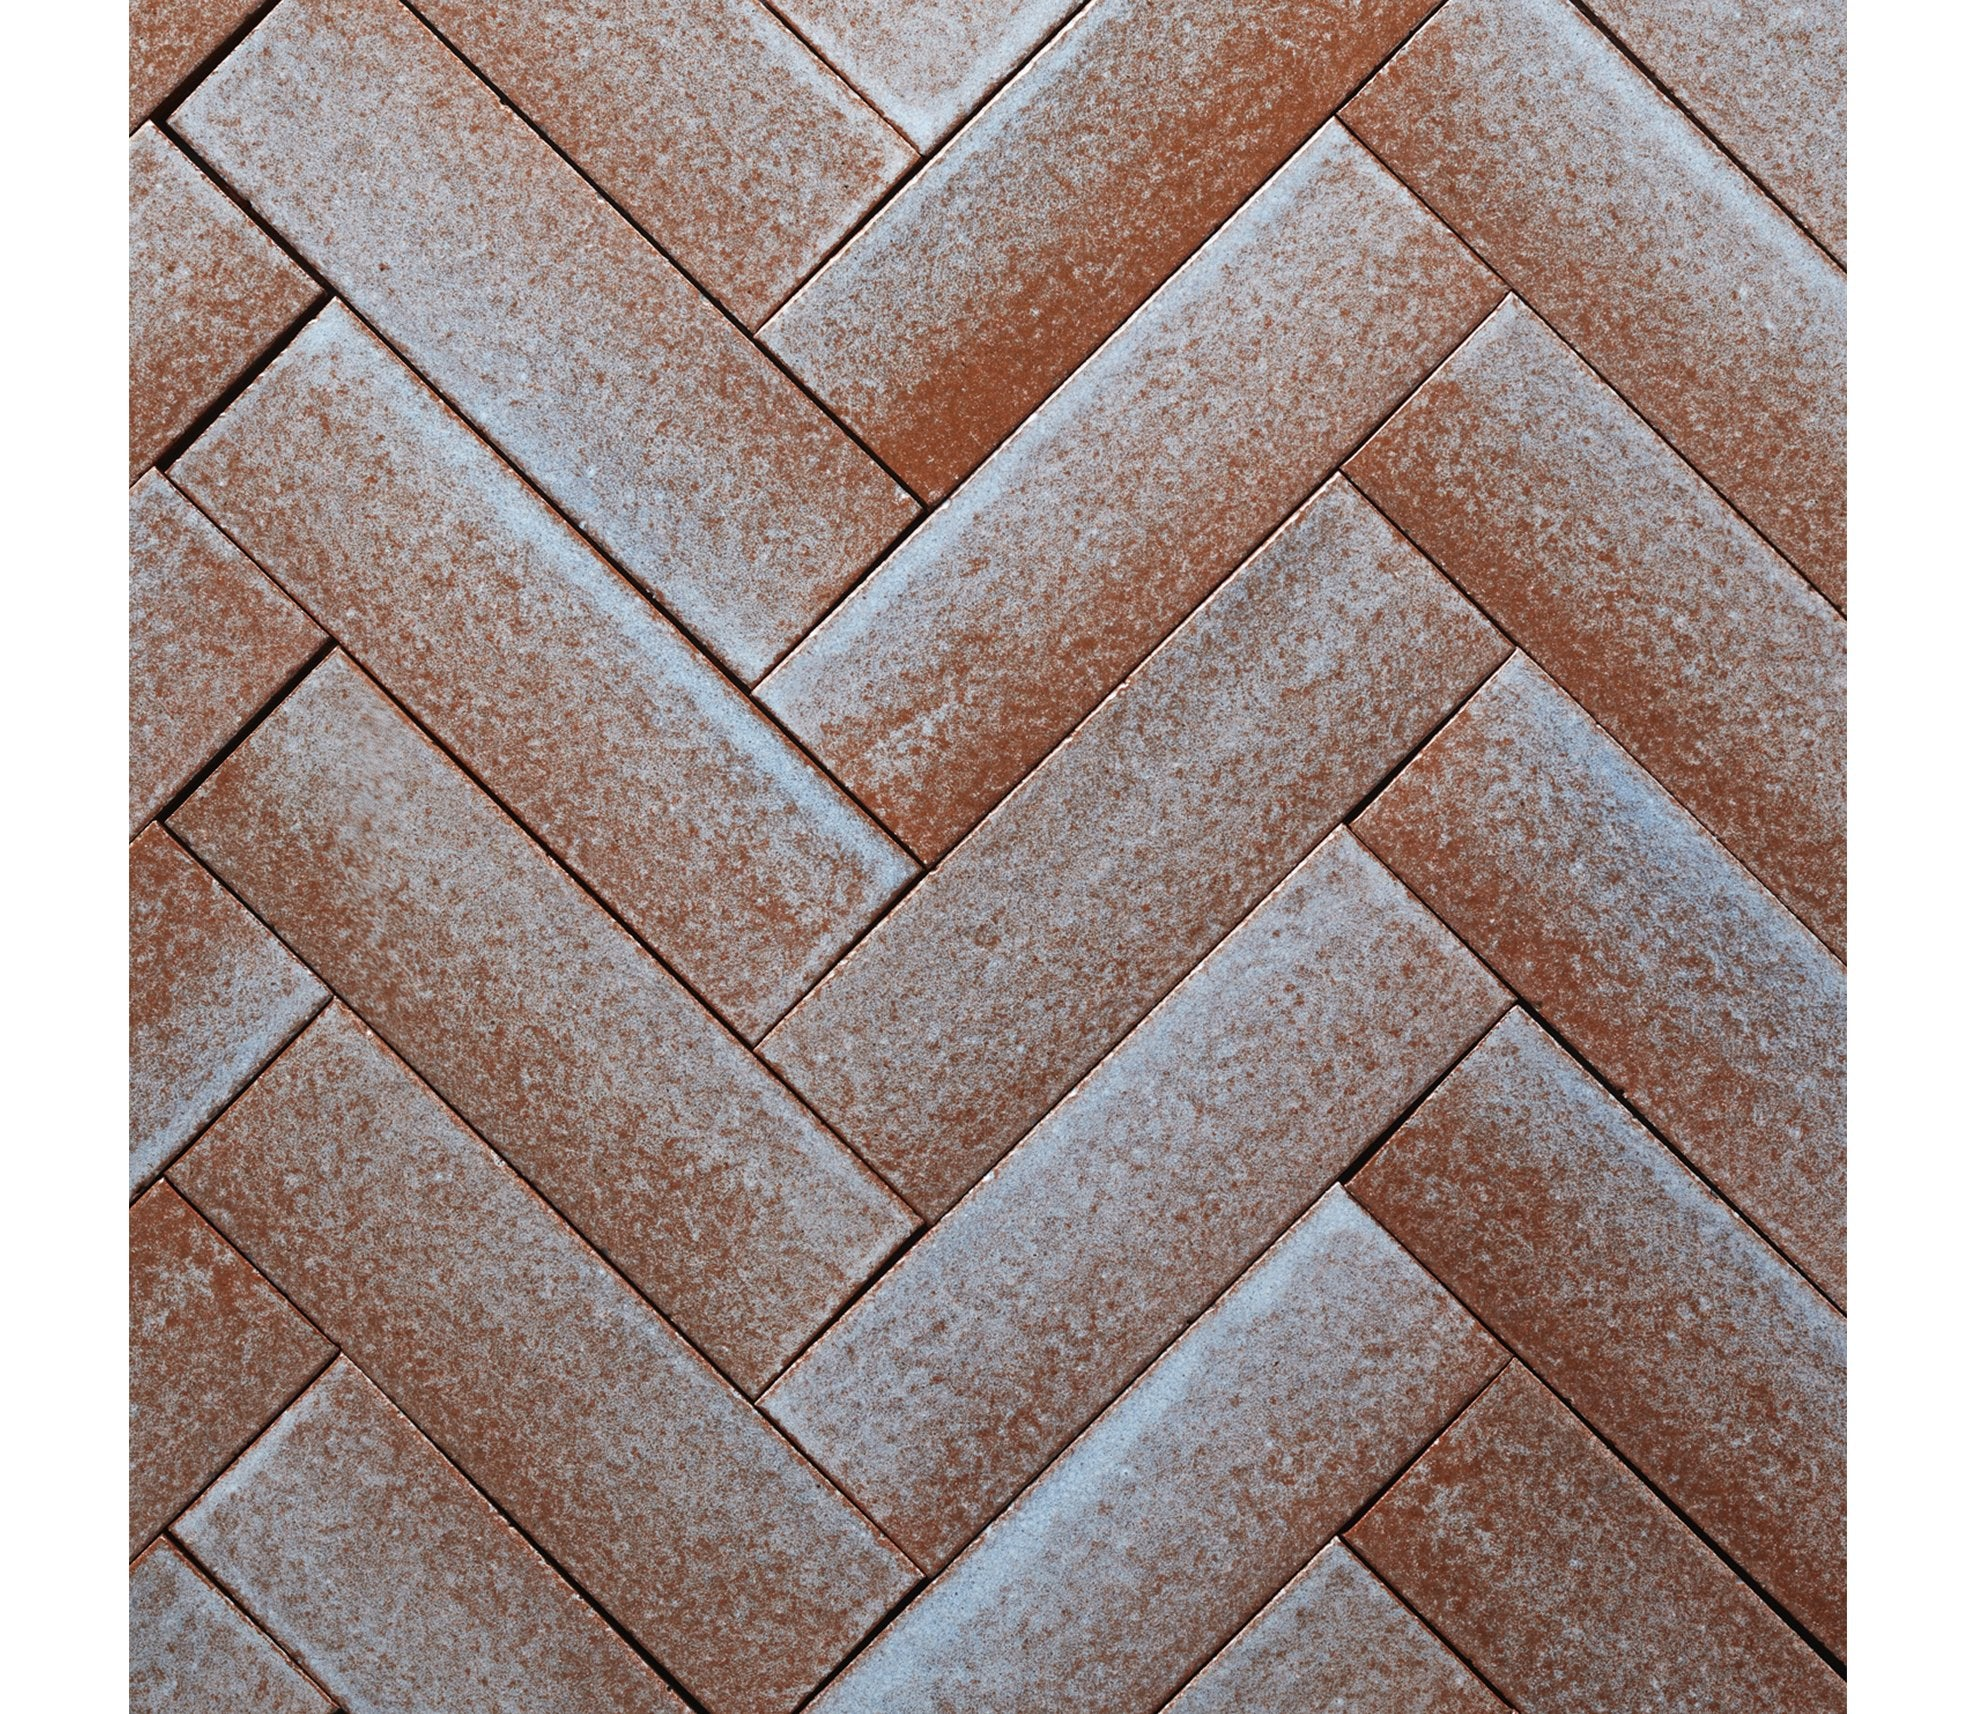 Terra Firma Glazed Bricks Product Image 43